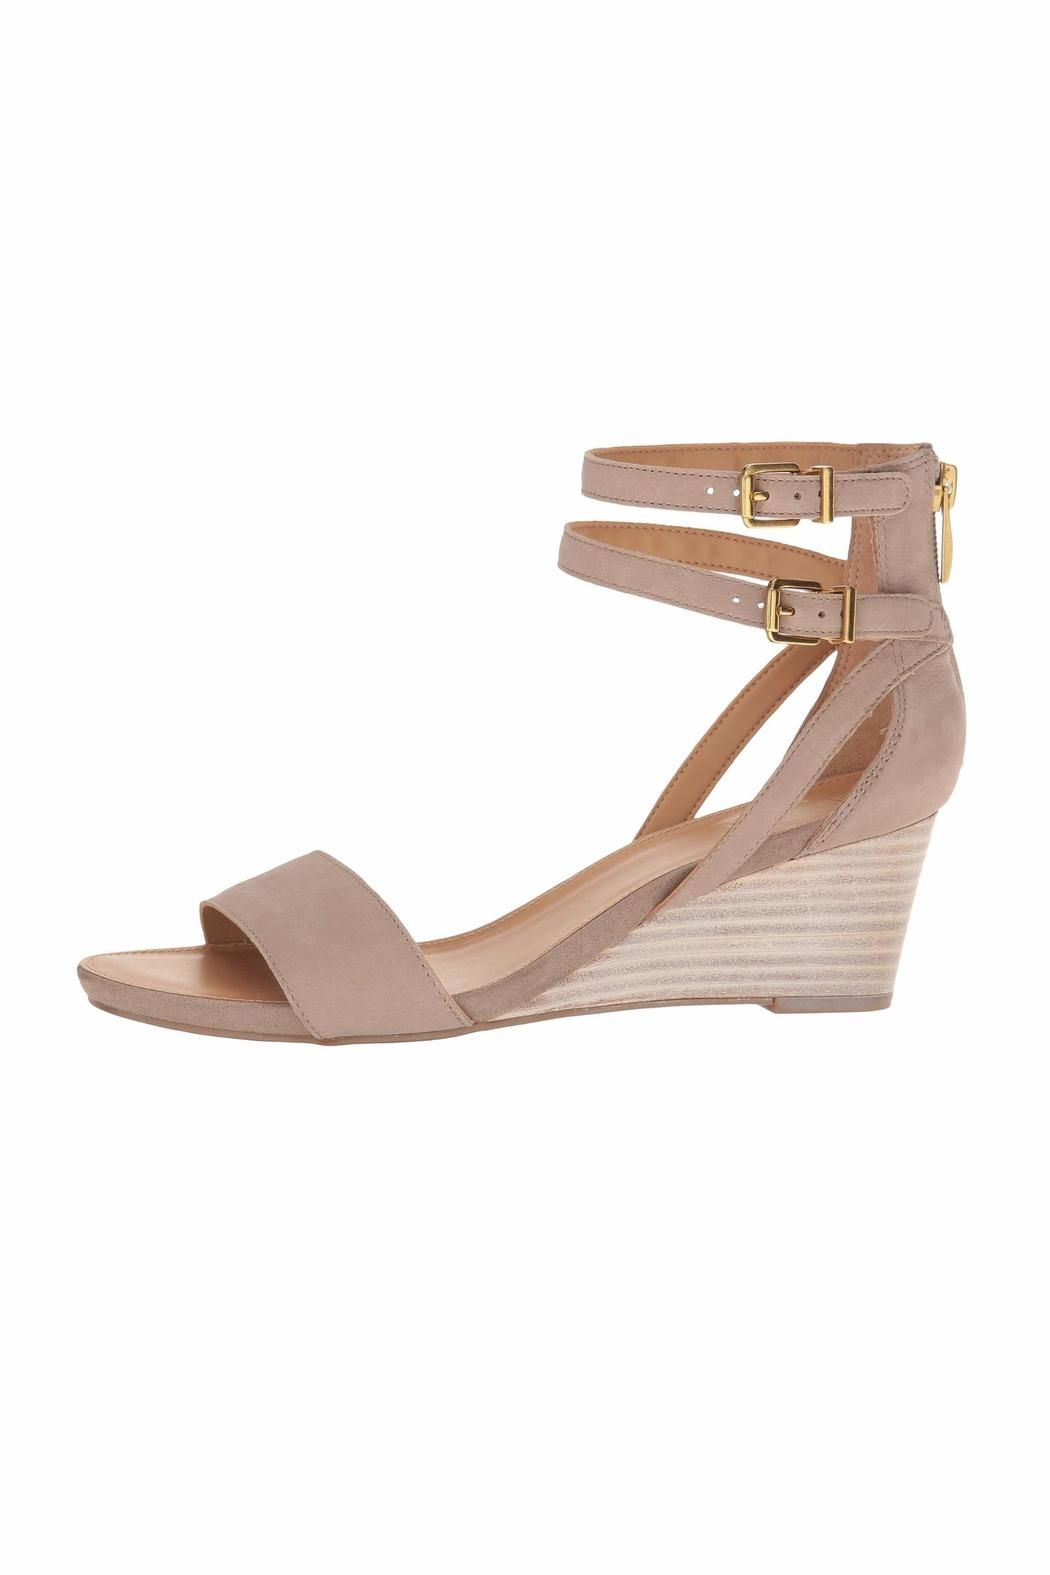 a5f315683a05 Seduce your style with the chic Danissa wedge sandal. Features ...